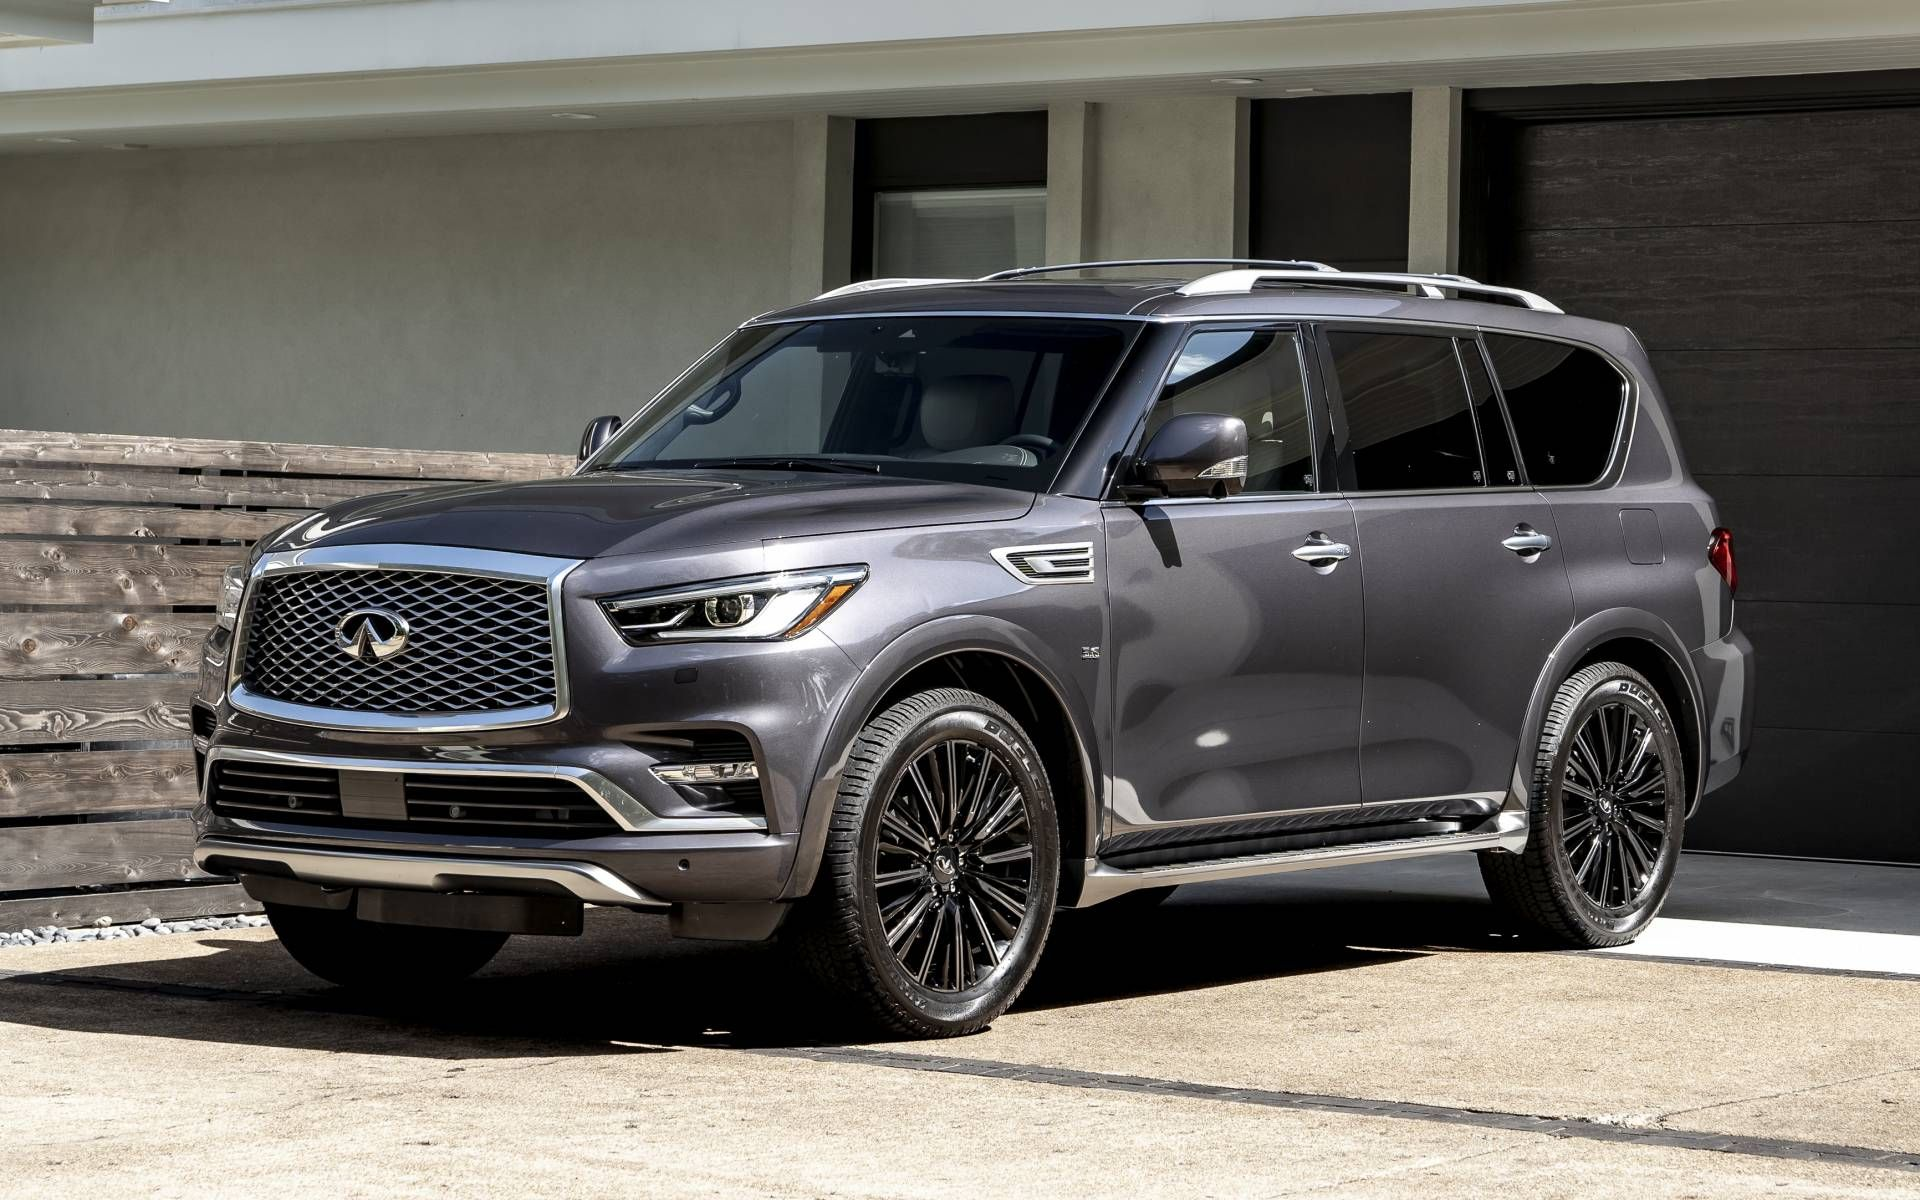 Car Industry Latest News Updates Autodeals Pk In 2020 Luxury Suv Suv Infiniti